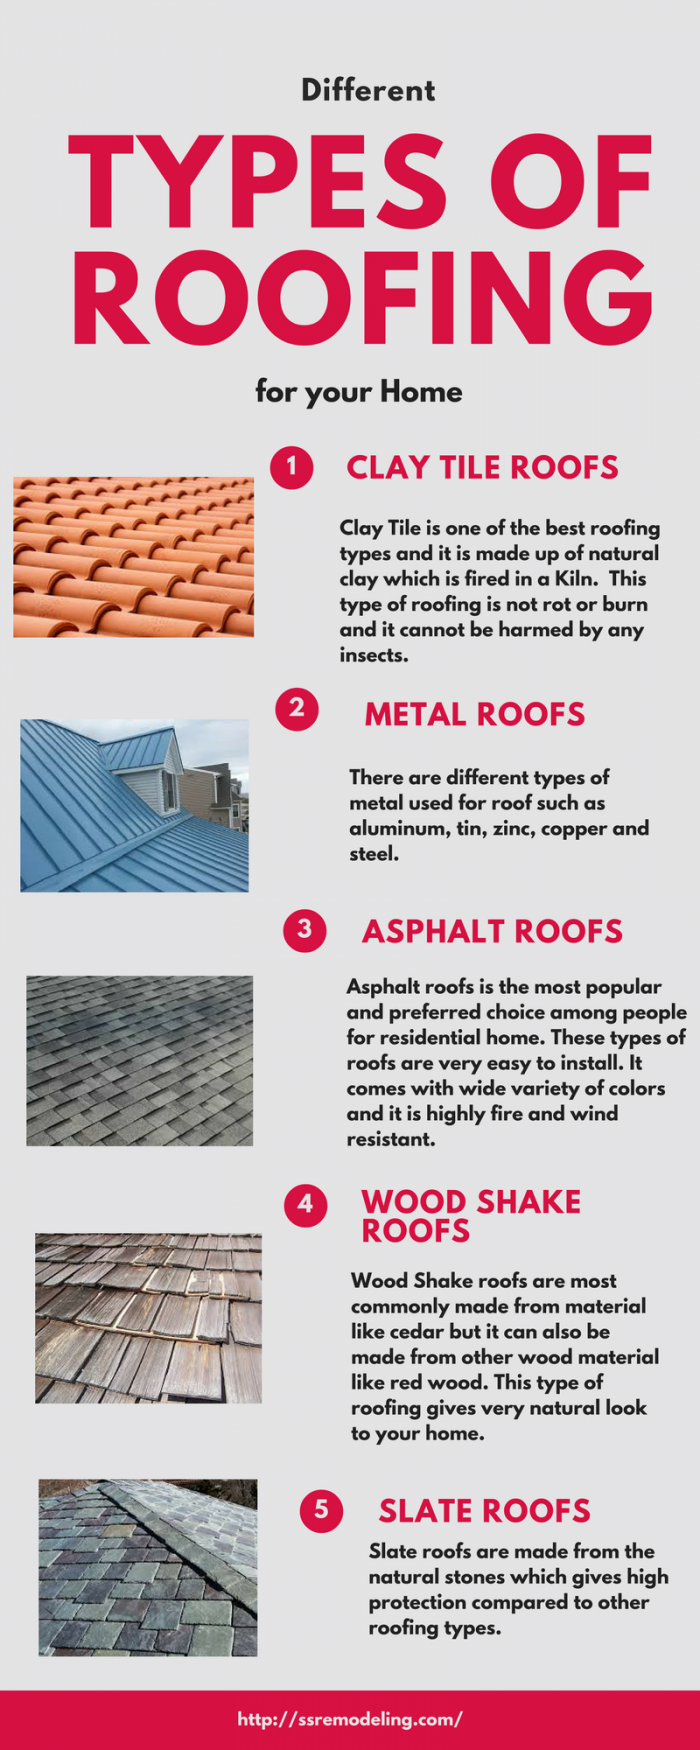 Types Of Roofing And Materials